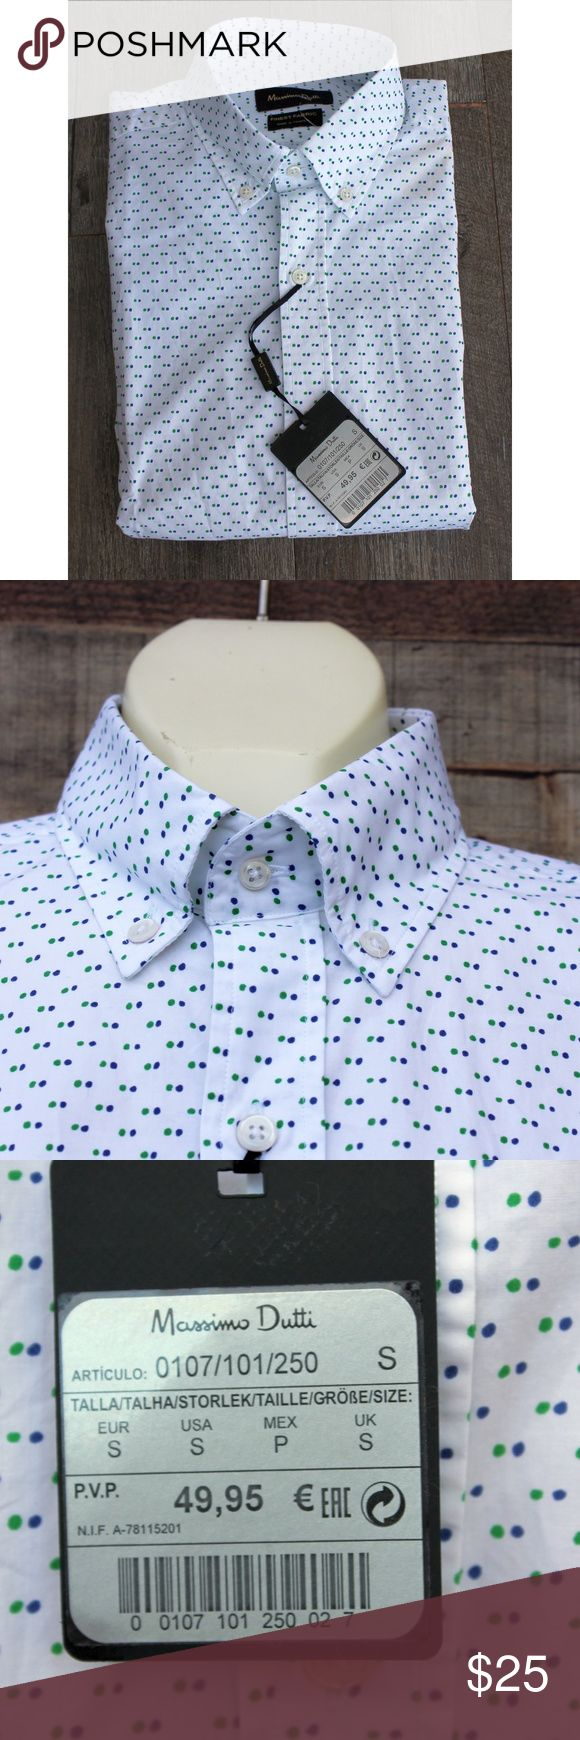 NEW Massimo Dutti Dress Shirt Small White W/Dots NEW dress shirt from Massimo Dutti.  It's in size Small.  It is in White with dots in blue and green.  It has a button down collar.  It has a plain front.  It has the original tags attached.  It is 100% cotton.  The tags are for 50 Euros which corresponds to $72 US dollars. Massimo Dutti Shirts Dress Shirts